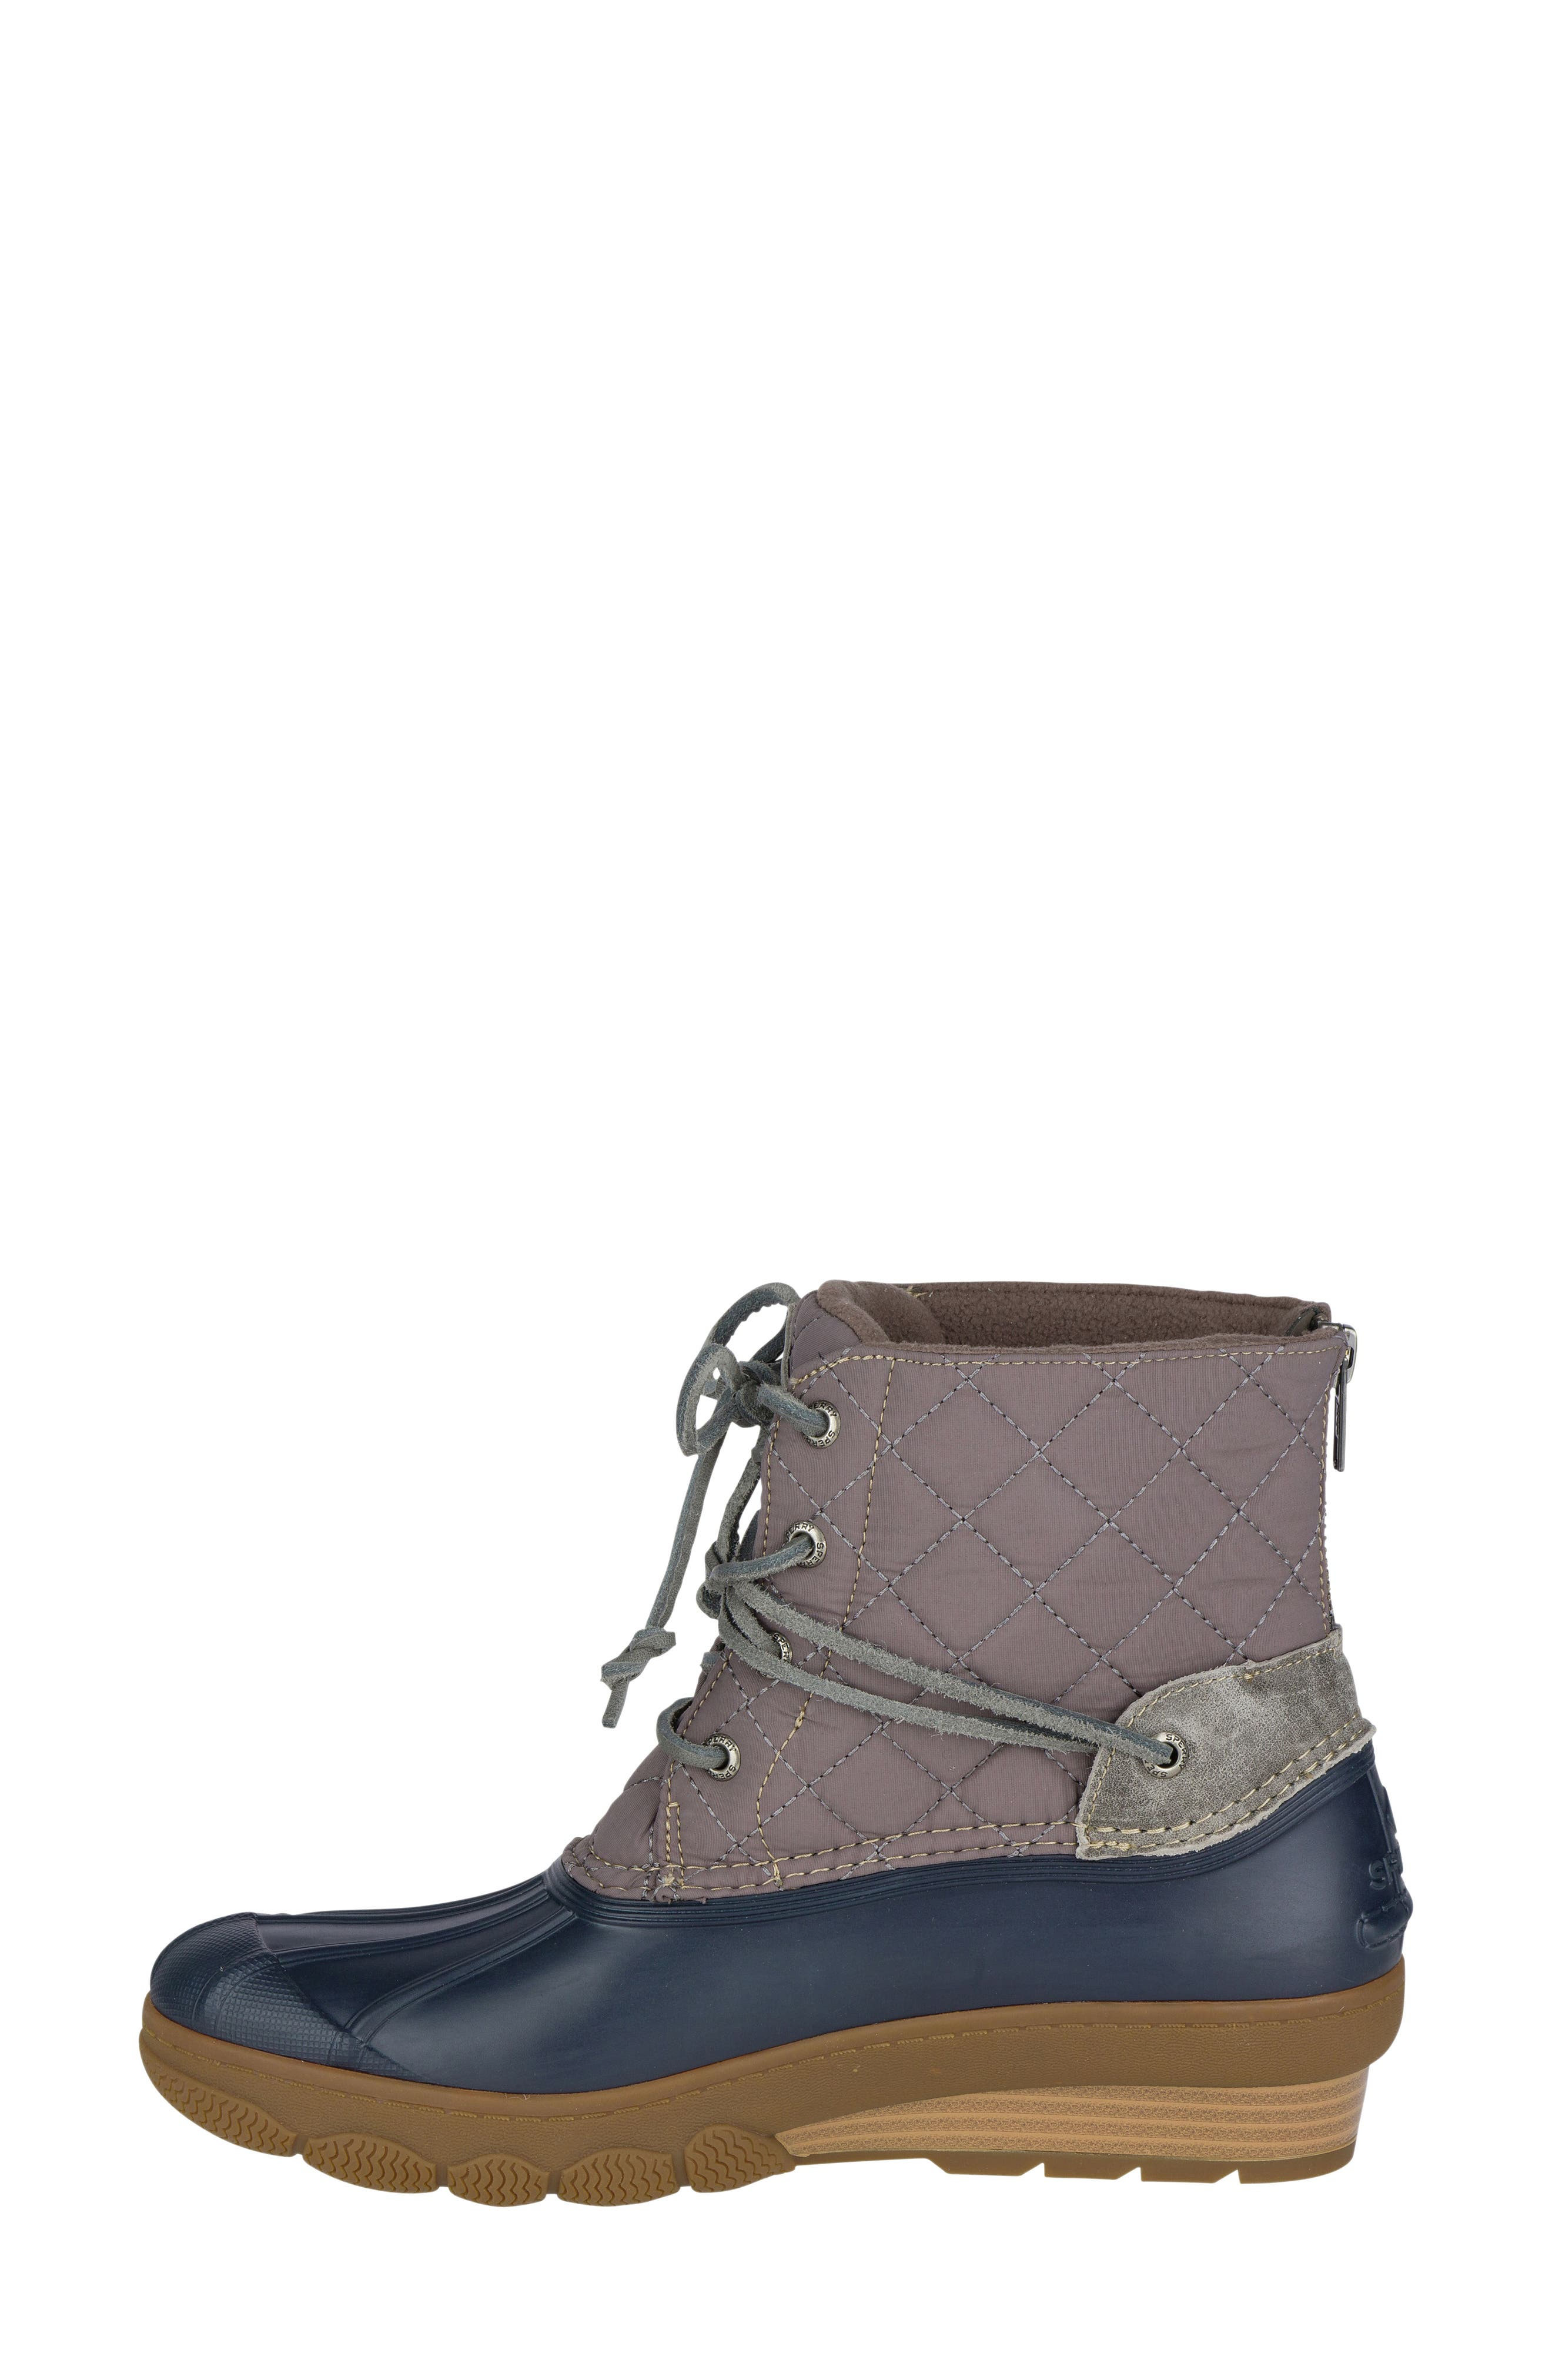 Saltwater Quilted Waterproof Boot,                             Alternate thumbnail 3, color,                             410